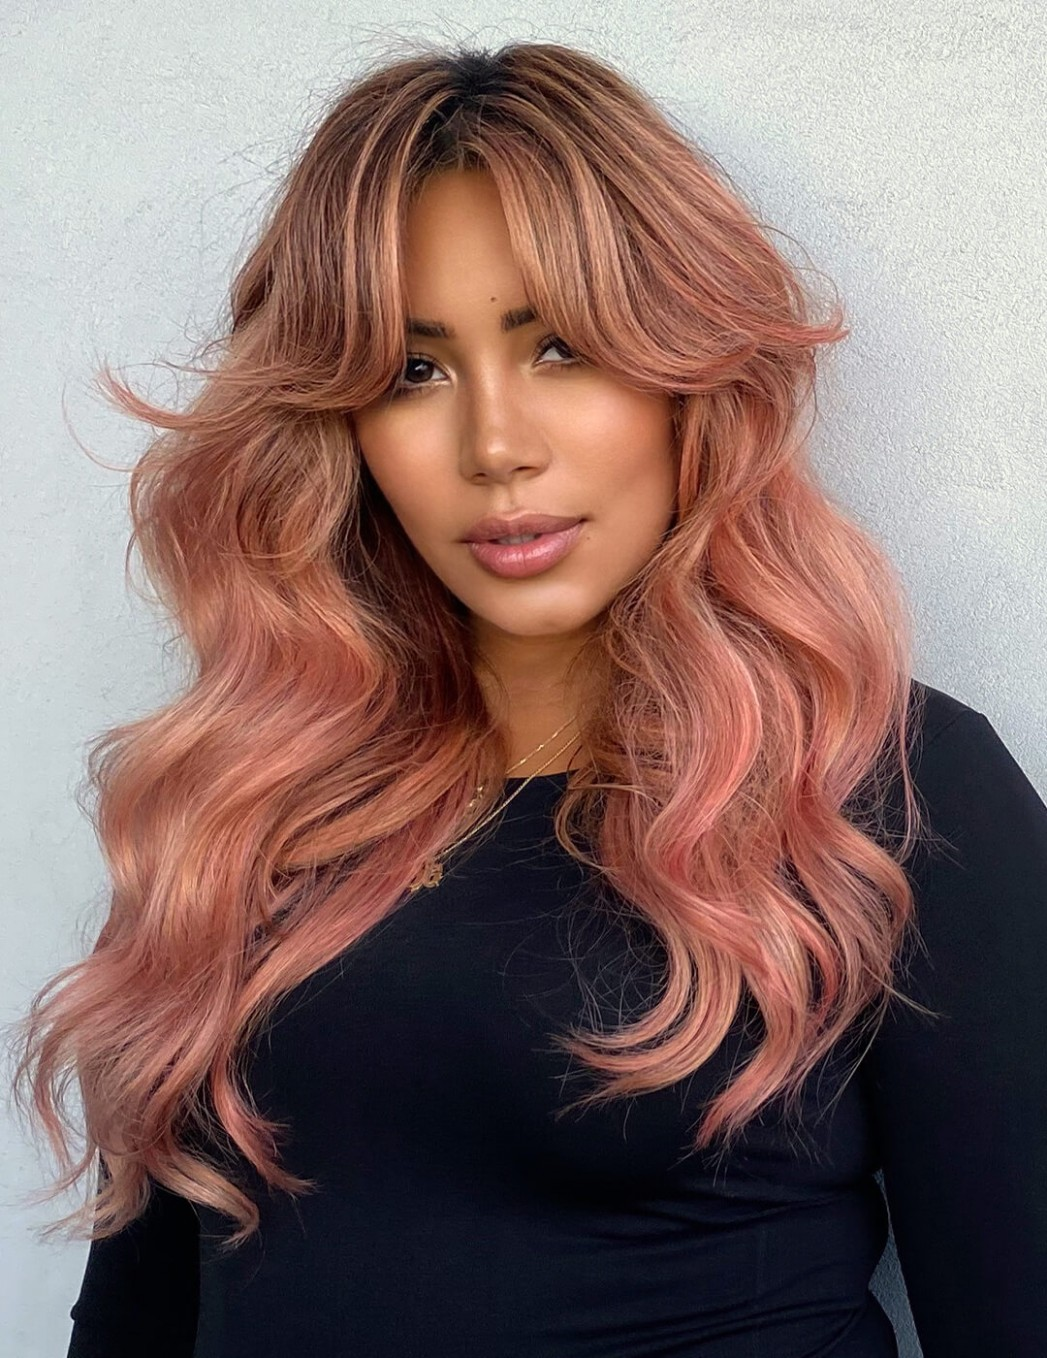 12 Best 12s Hair Trends To Try Now 1912s Hairstyle Inspo IPSY 70S Long Hair